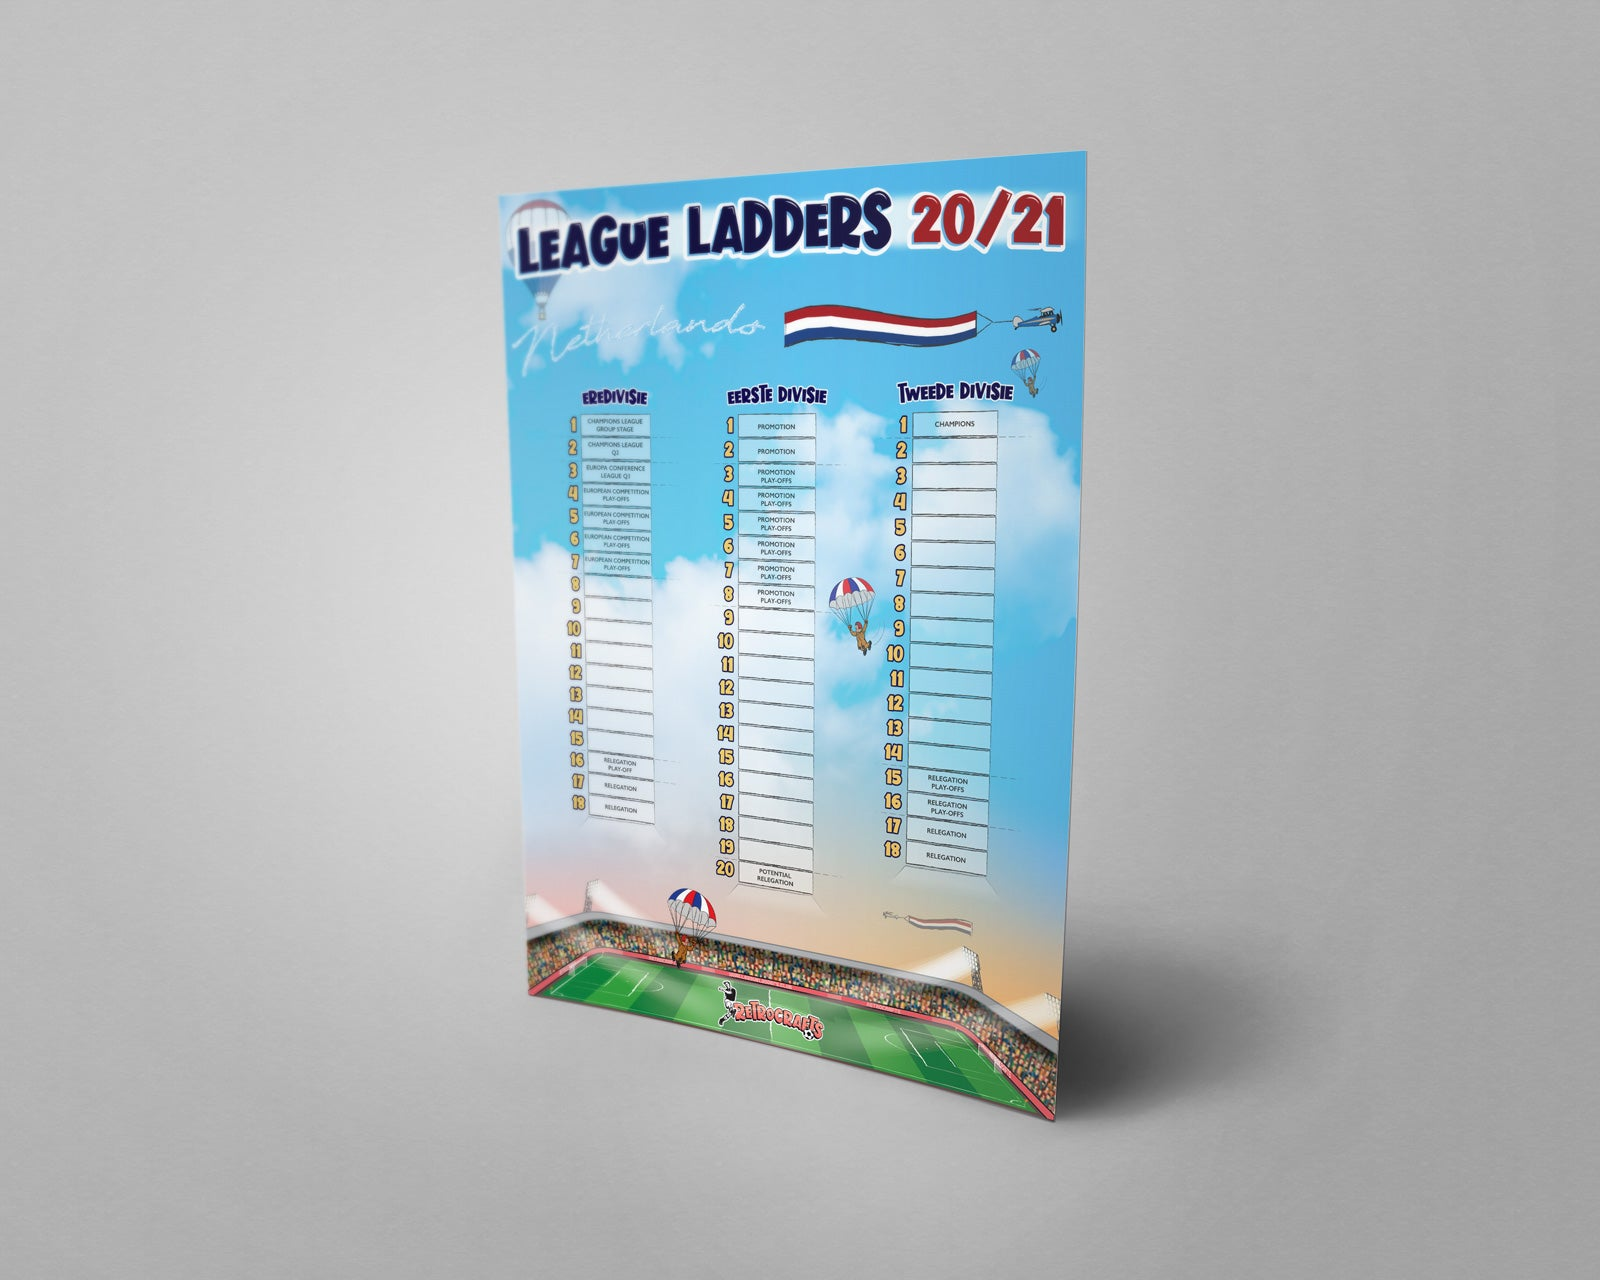 Netherlands Football League Tiers 1-3 2020/21 Season League Ladders